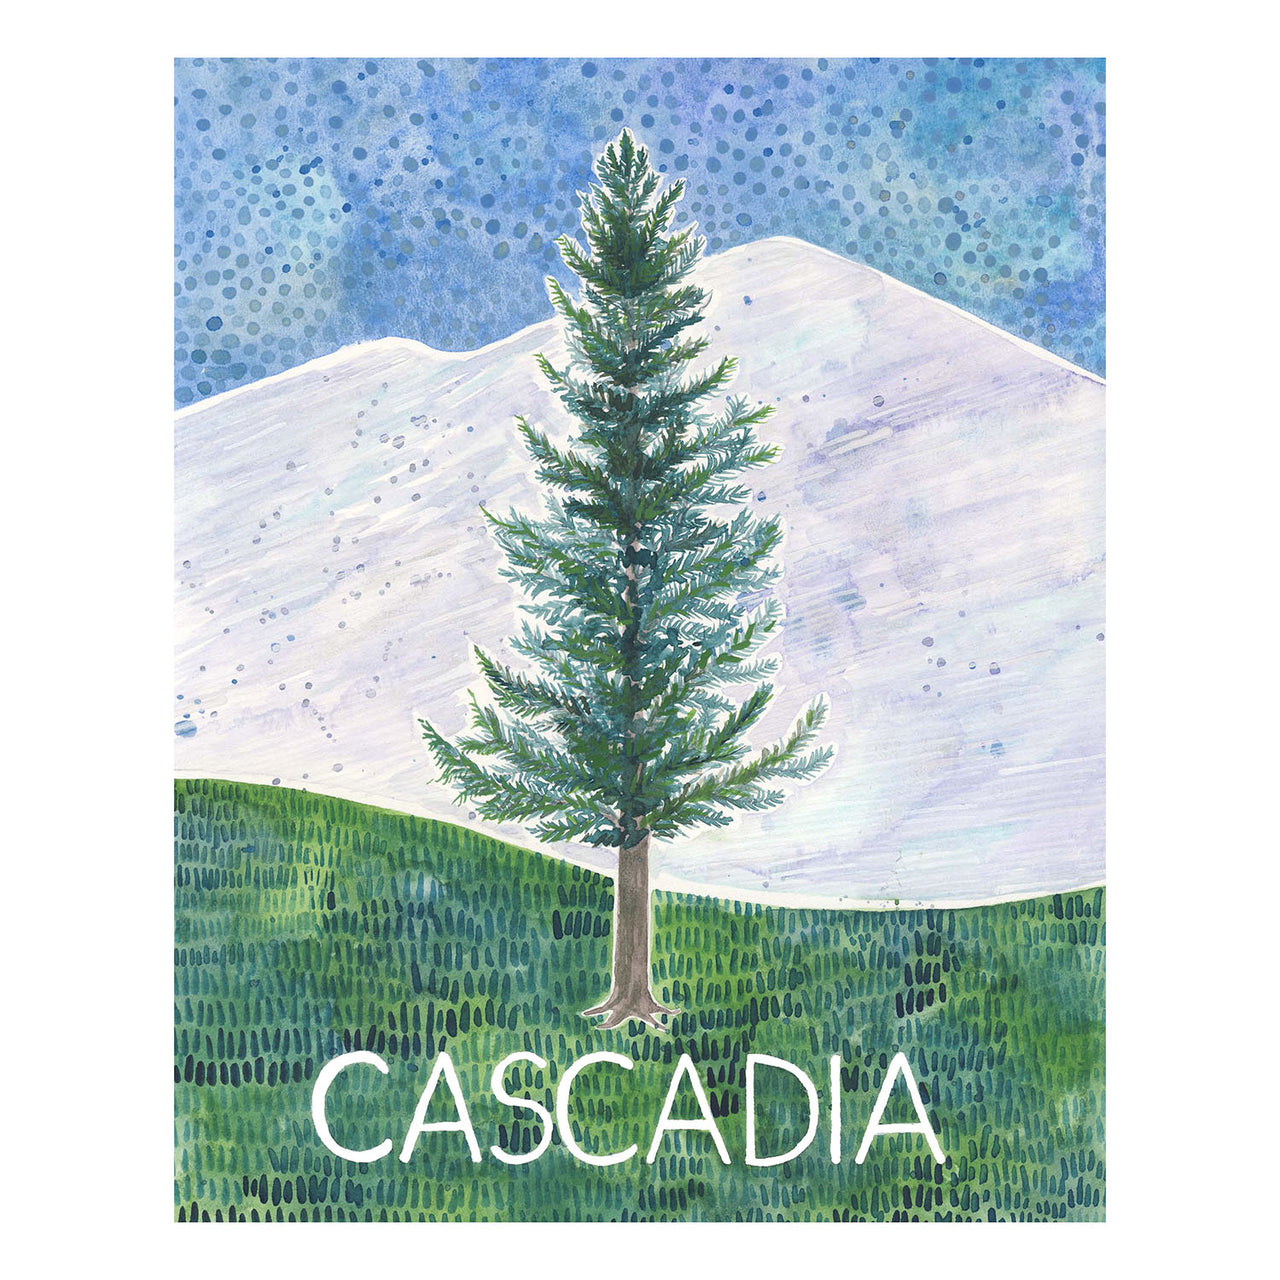 Cascadia original watercolor painting by Yardia